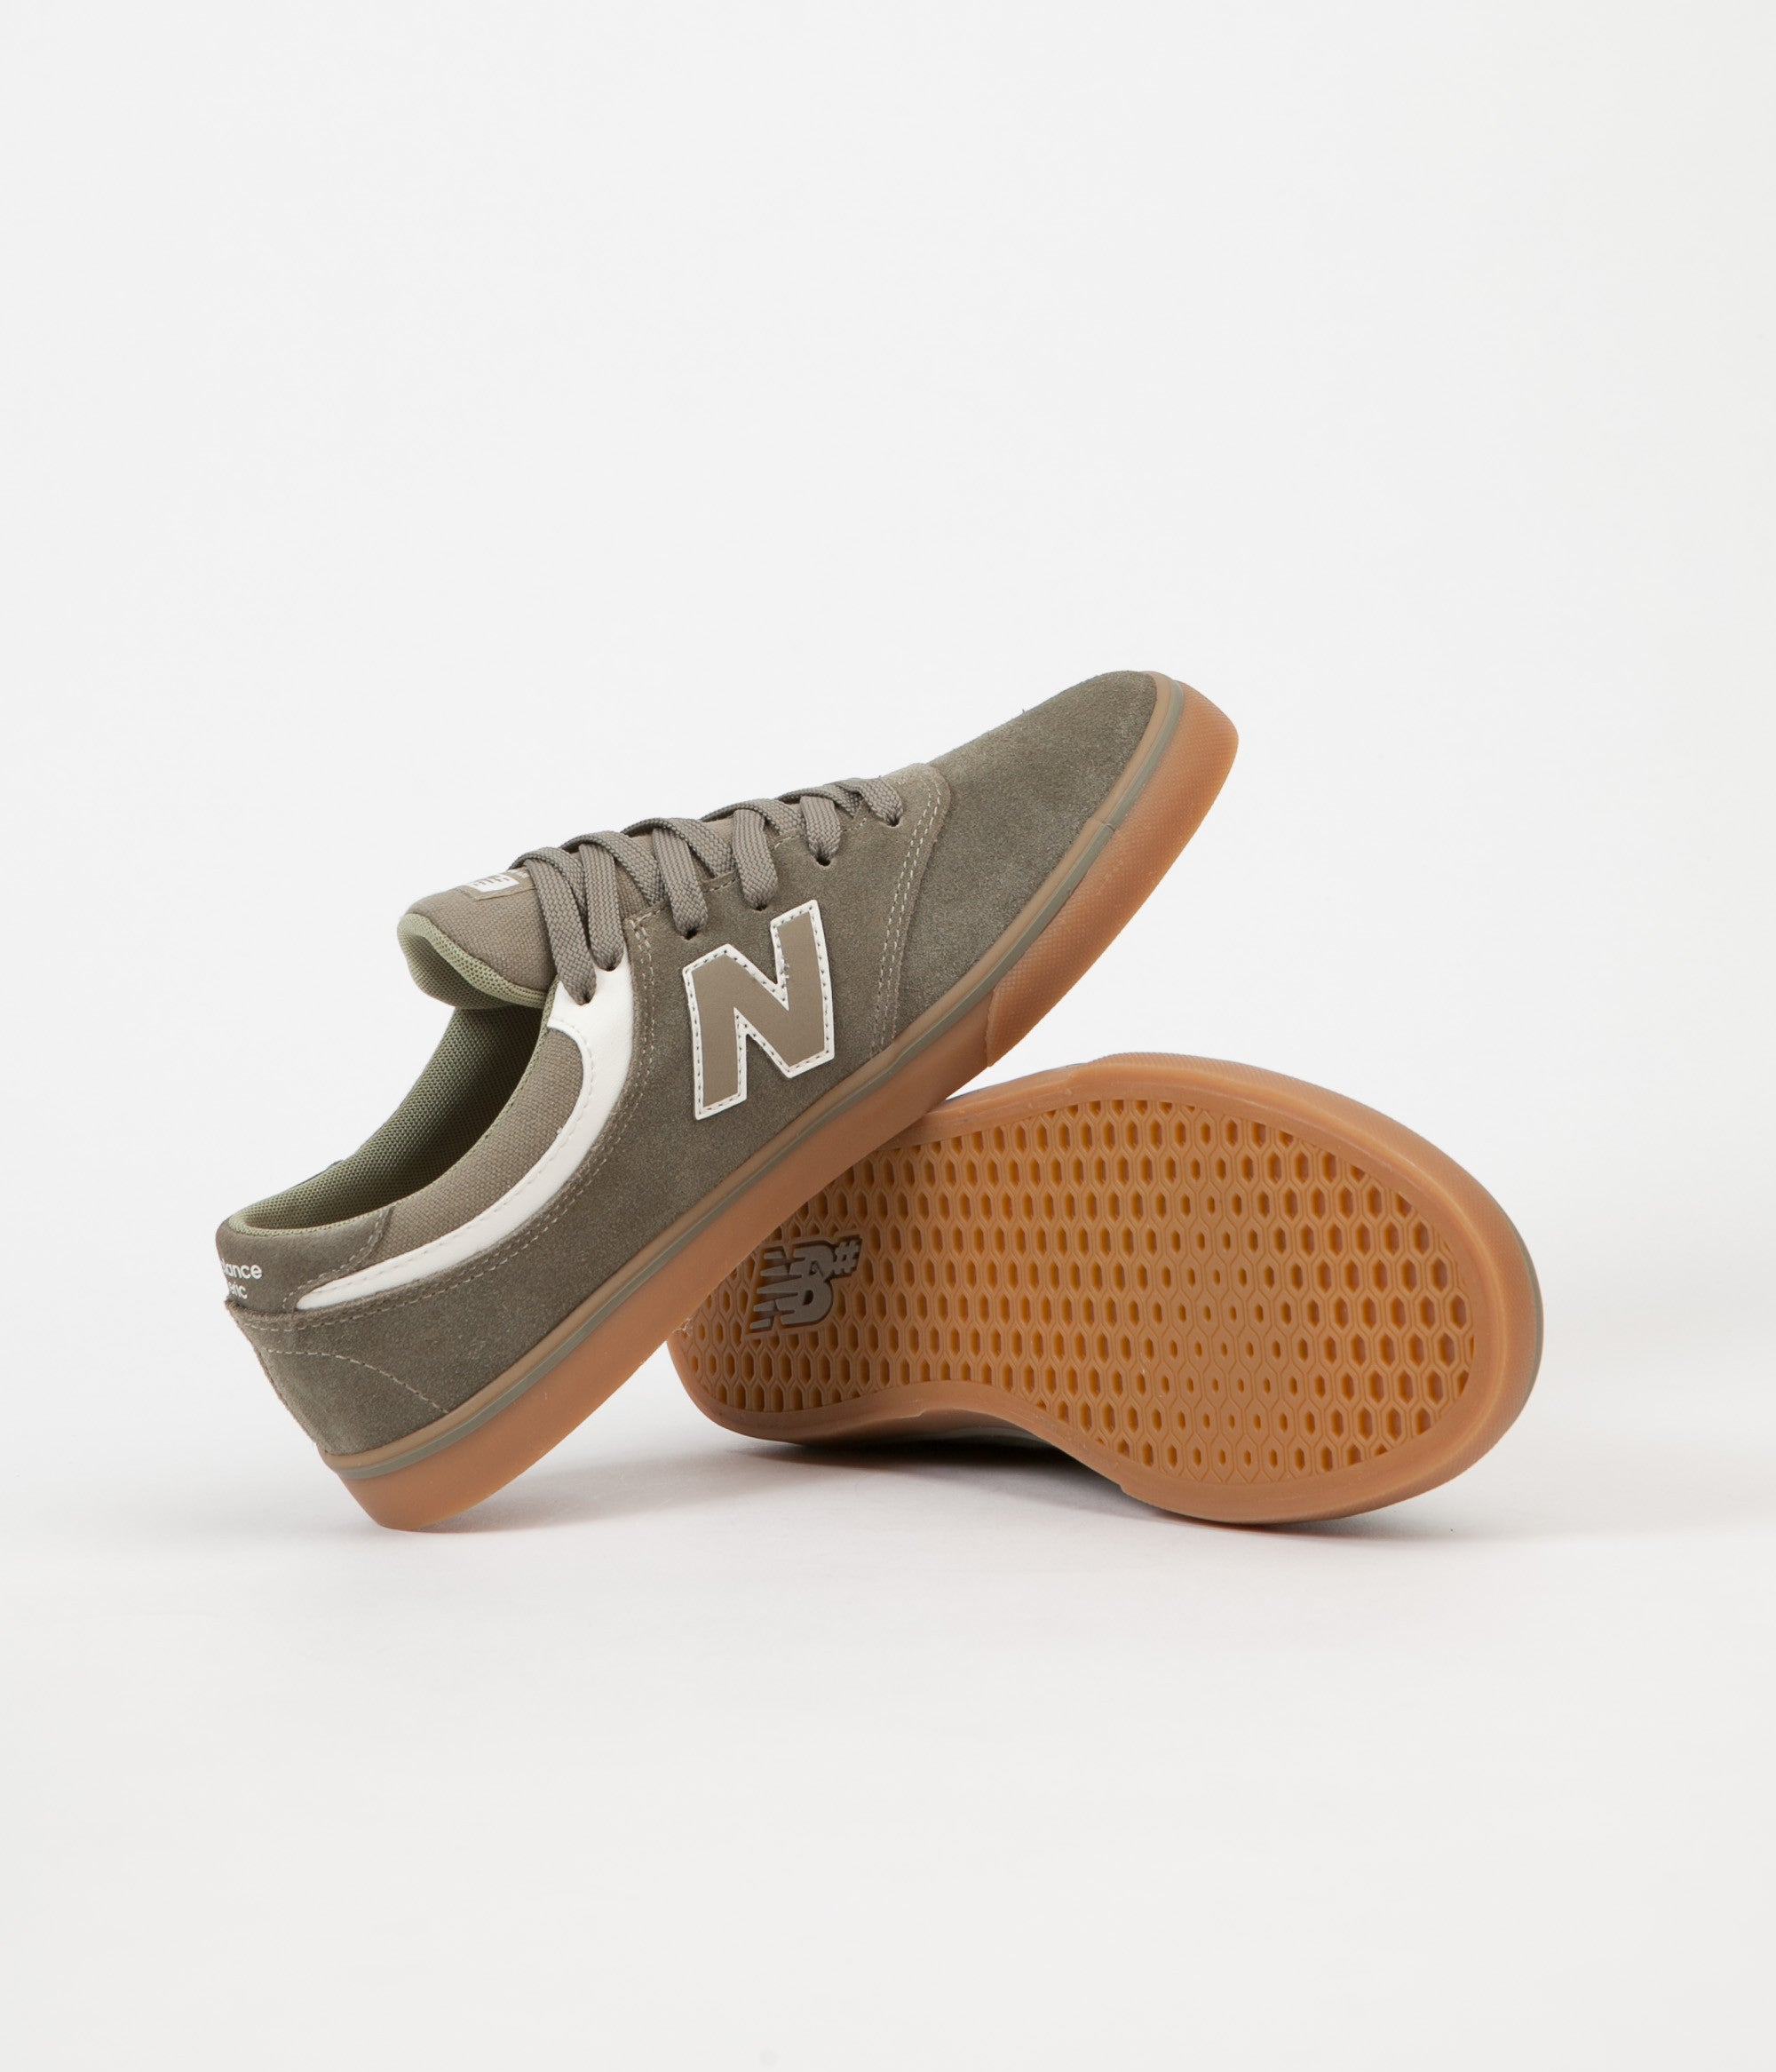 new balance quincy 254. new balance quincy 254 shoes - olive / gum